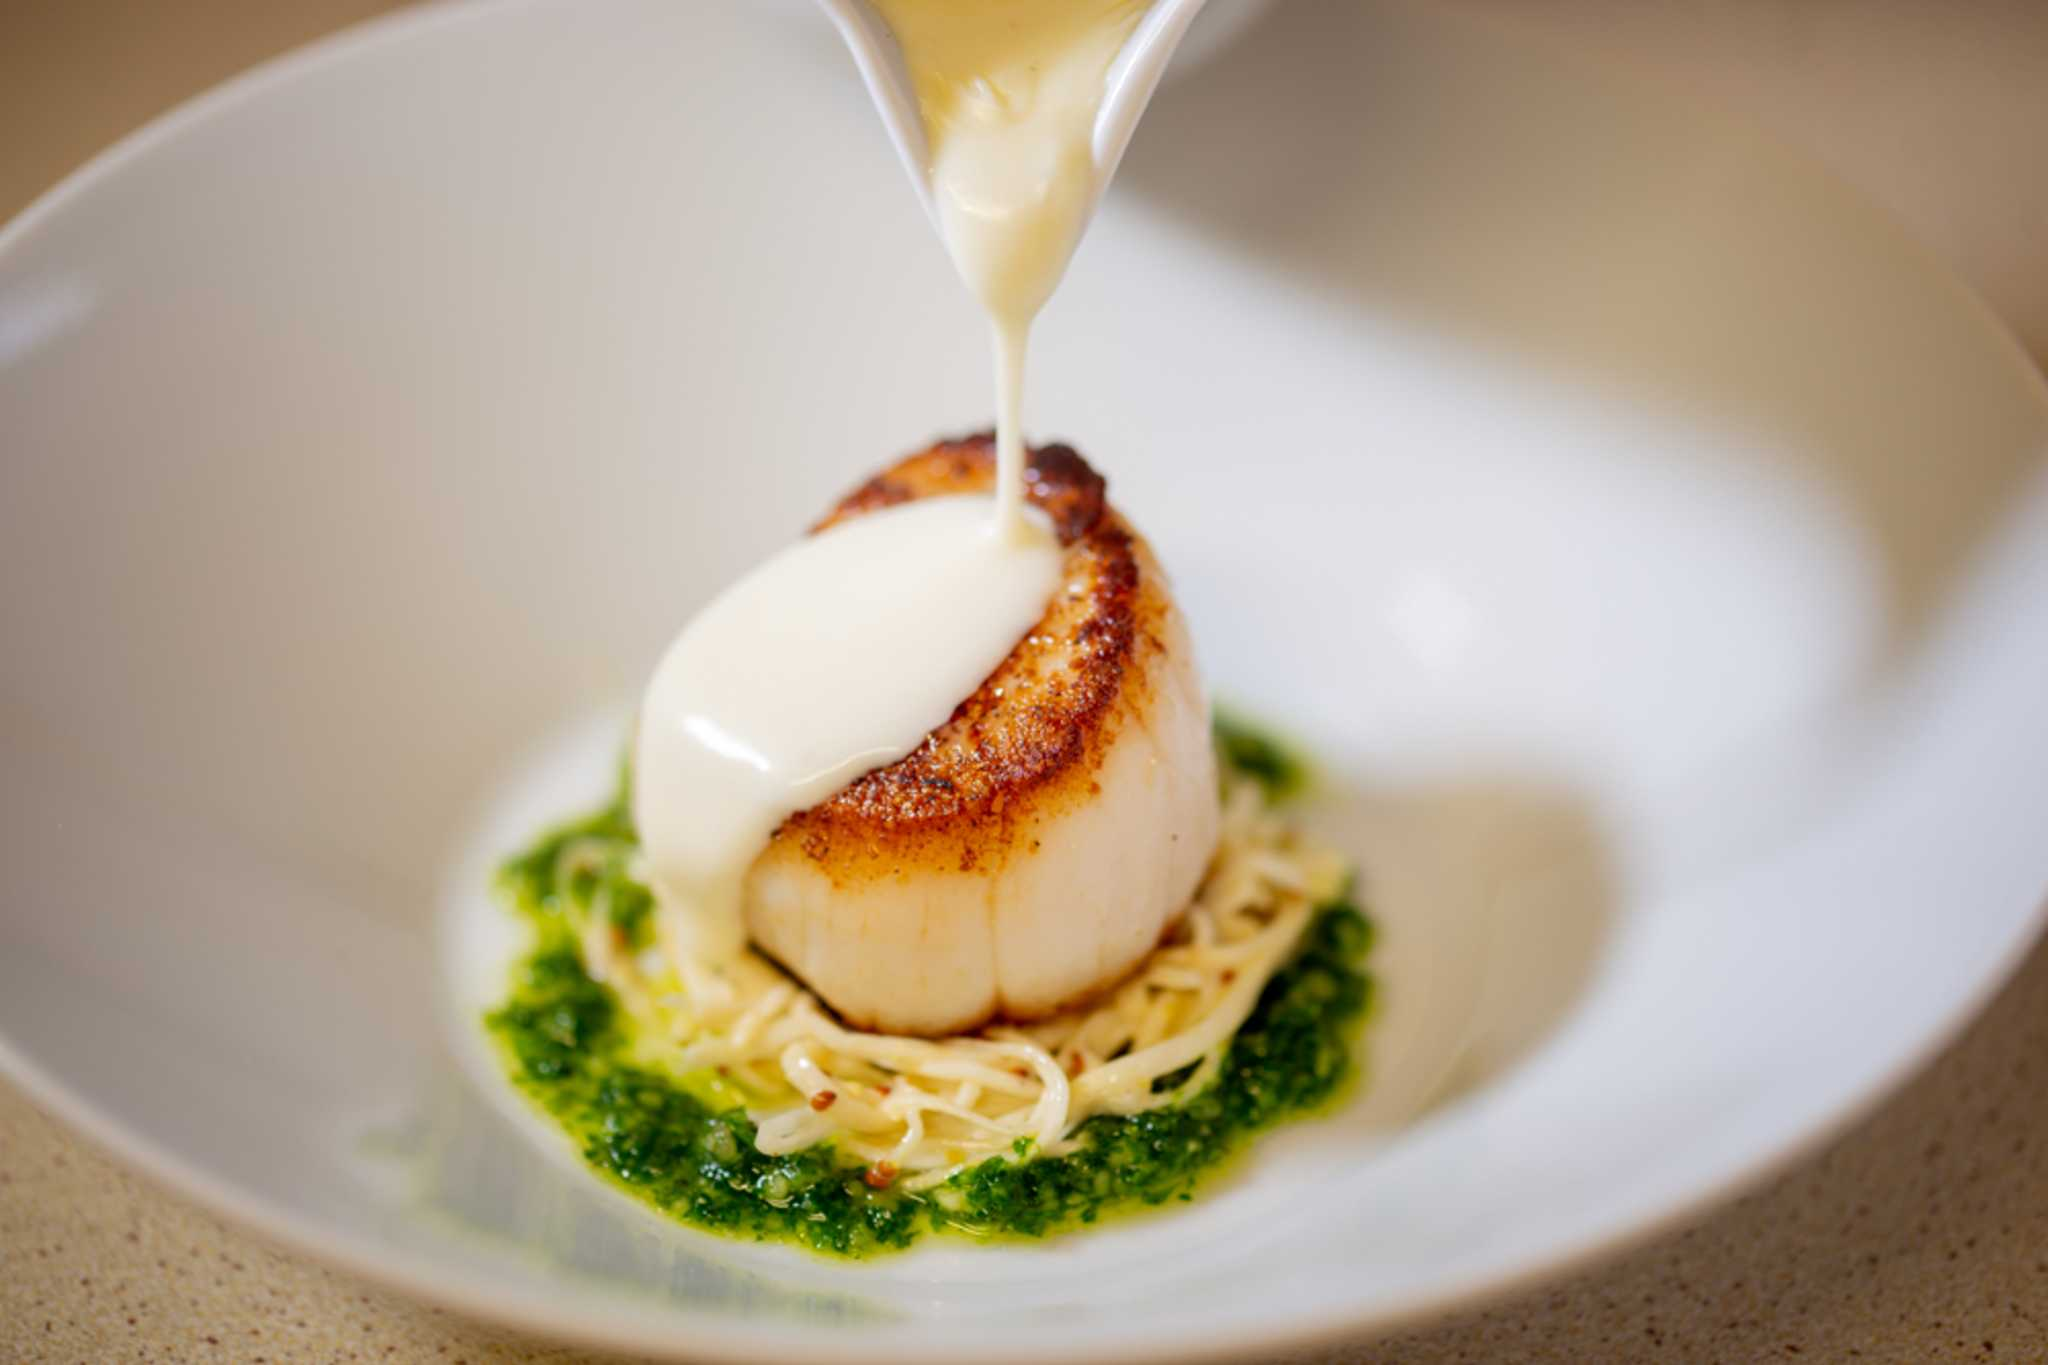 A scallop dish at Blackaddie Country House Hotel, Sanquhar